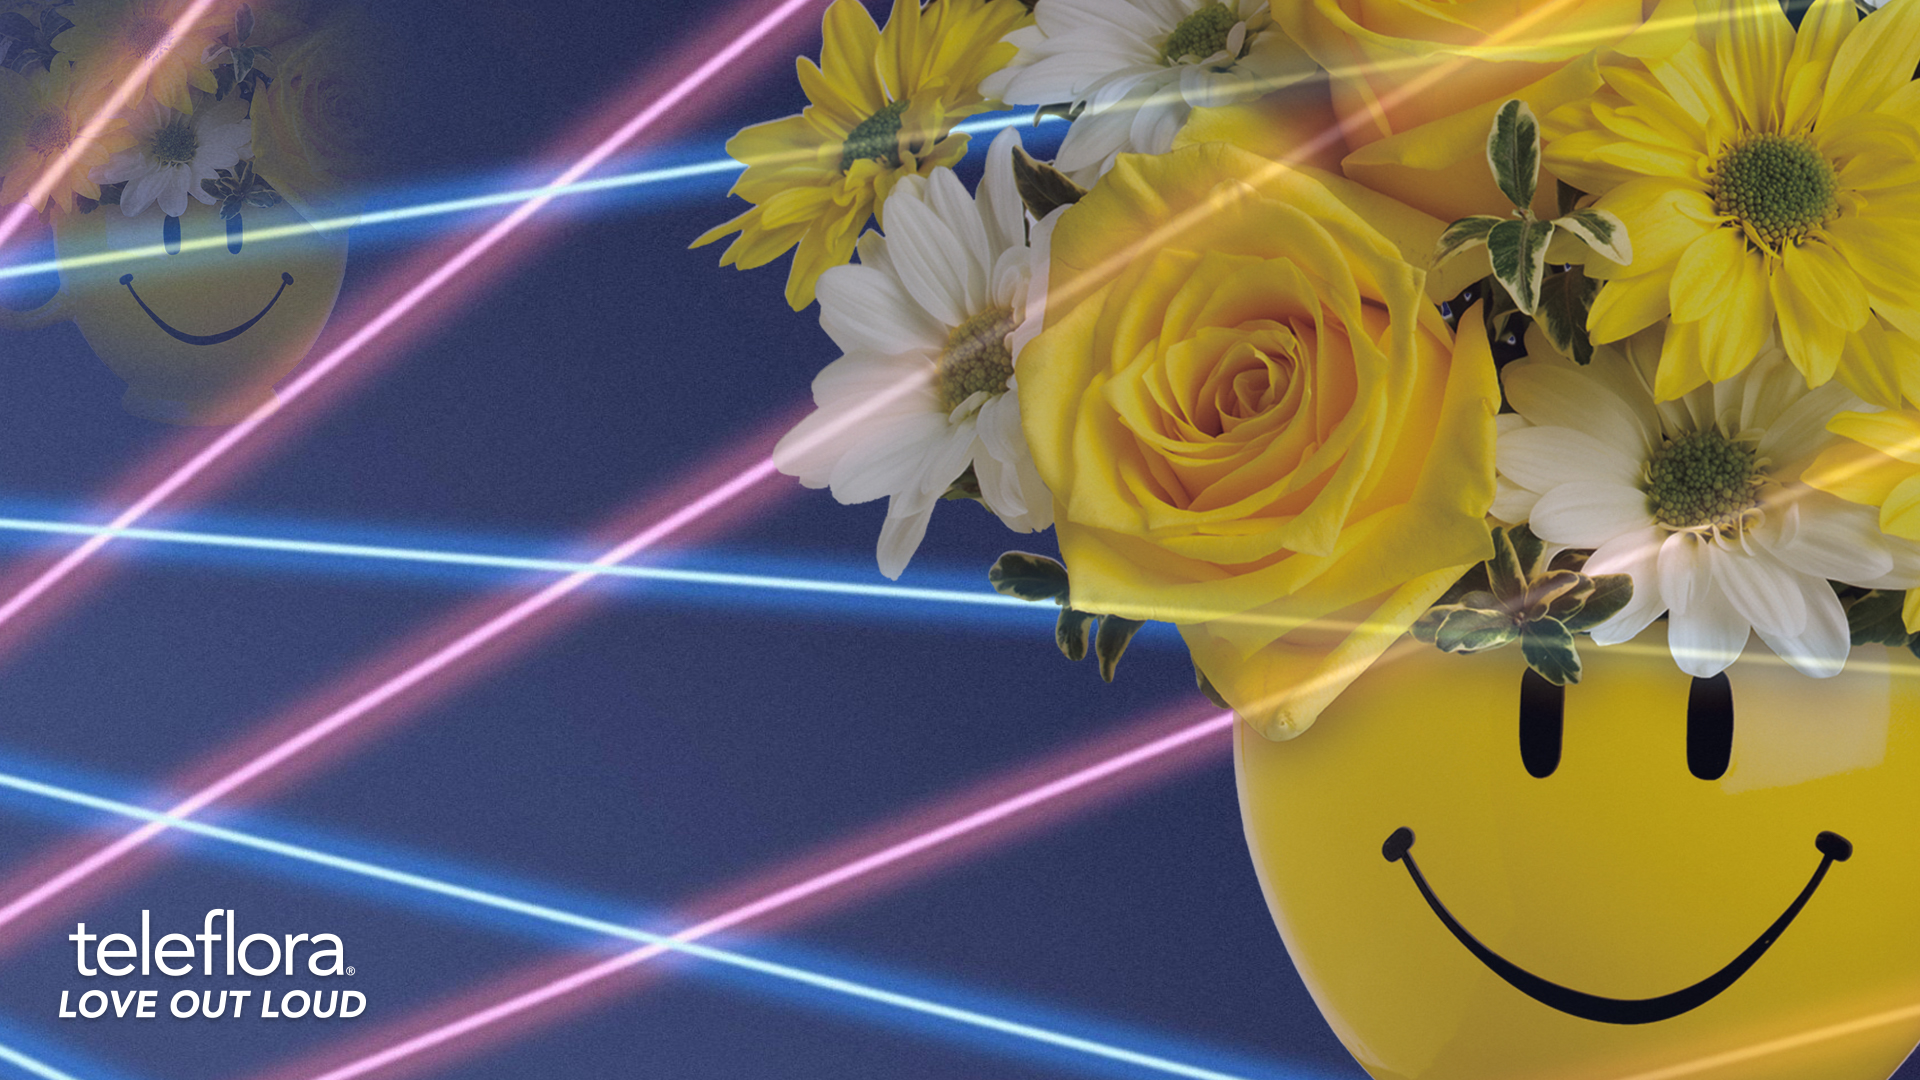 lasers and yellow mug with yellow and white roses background